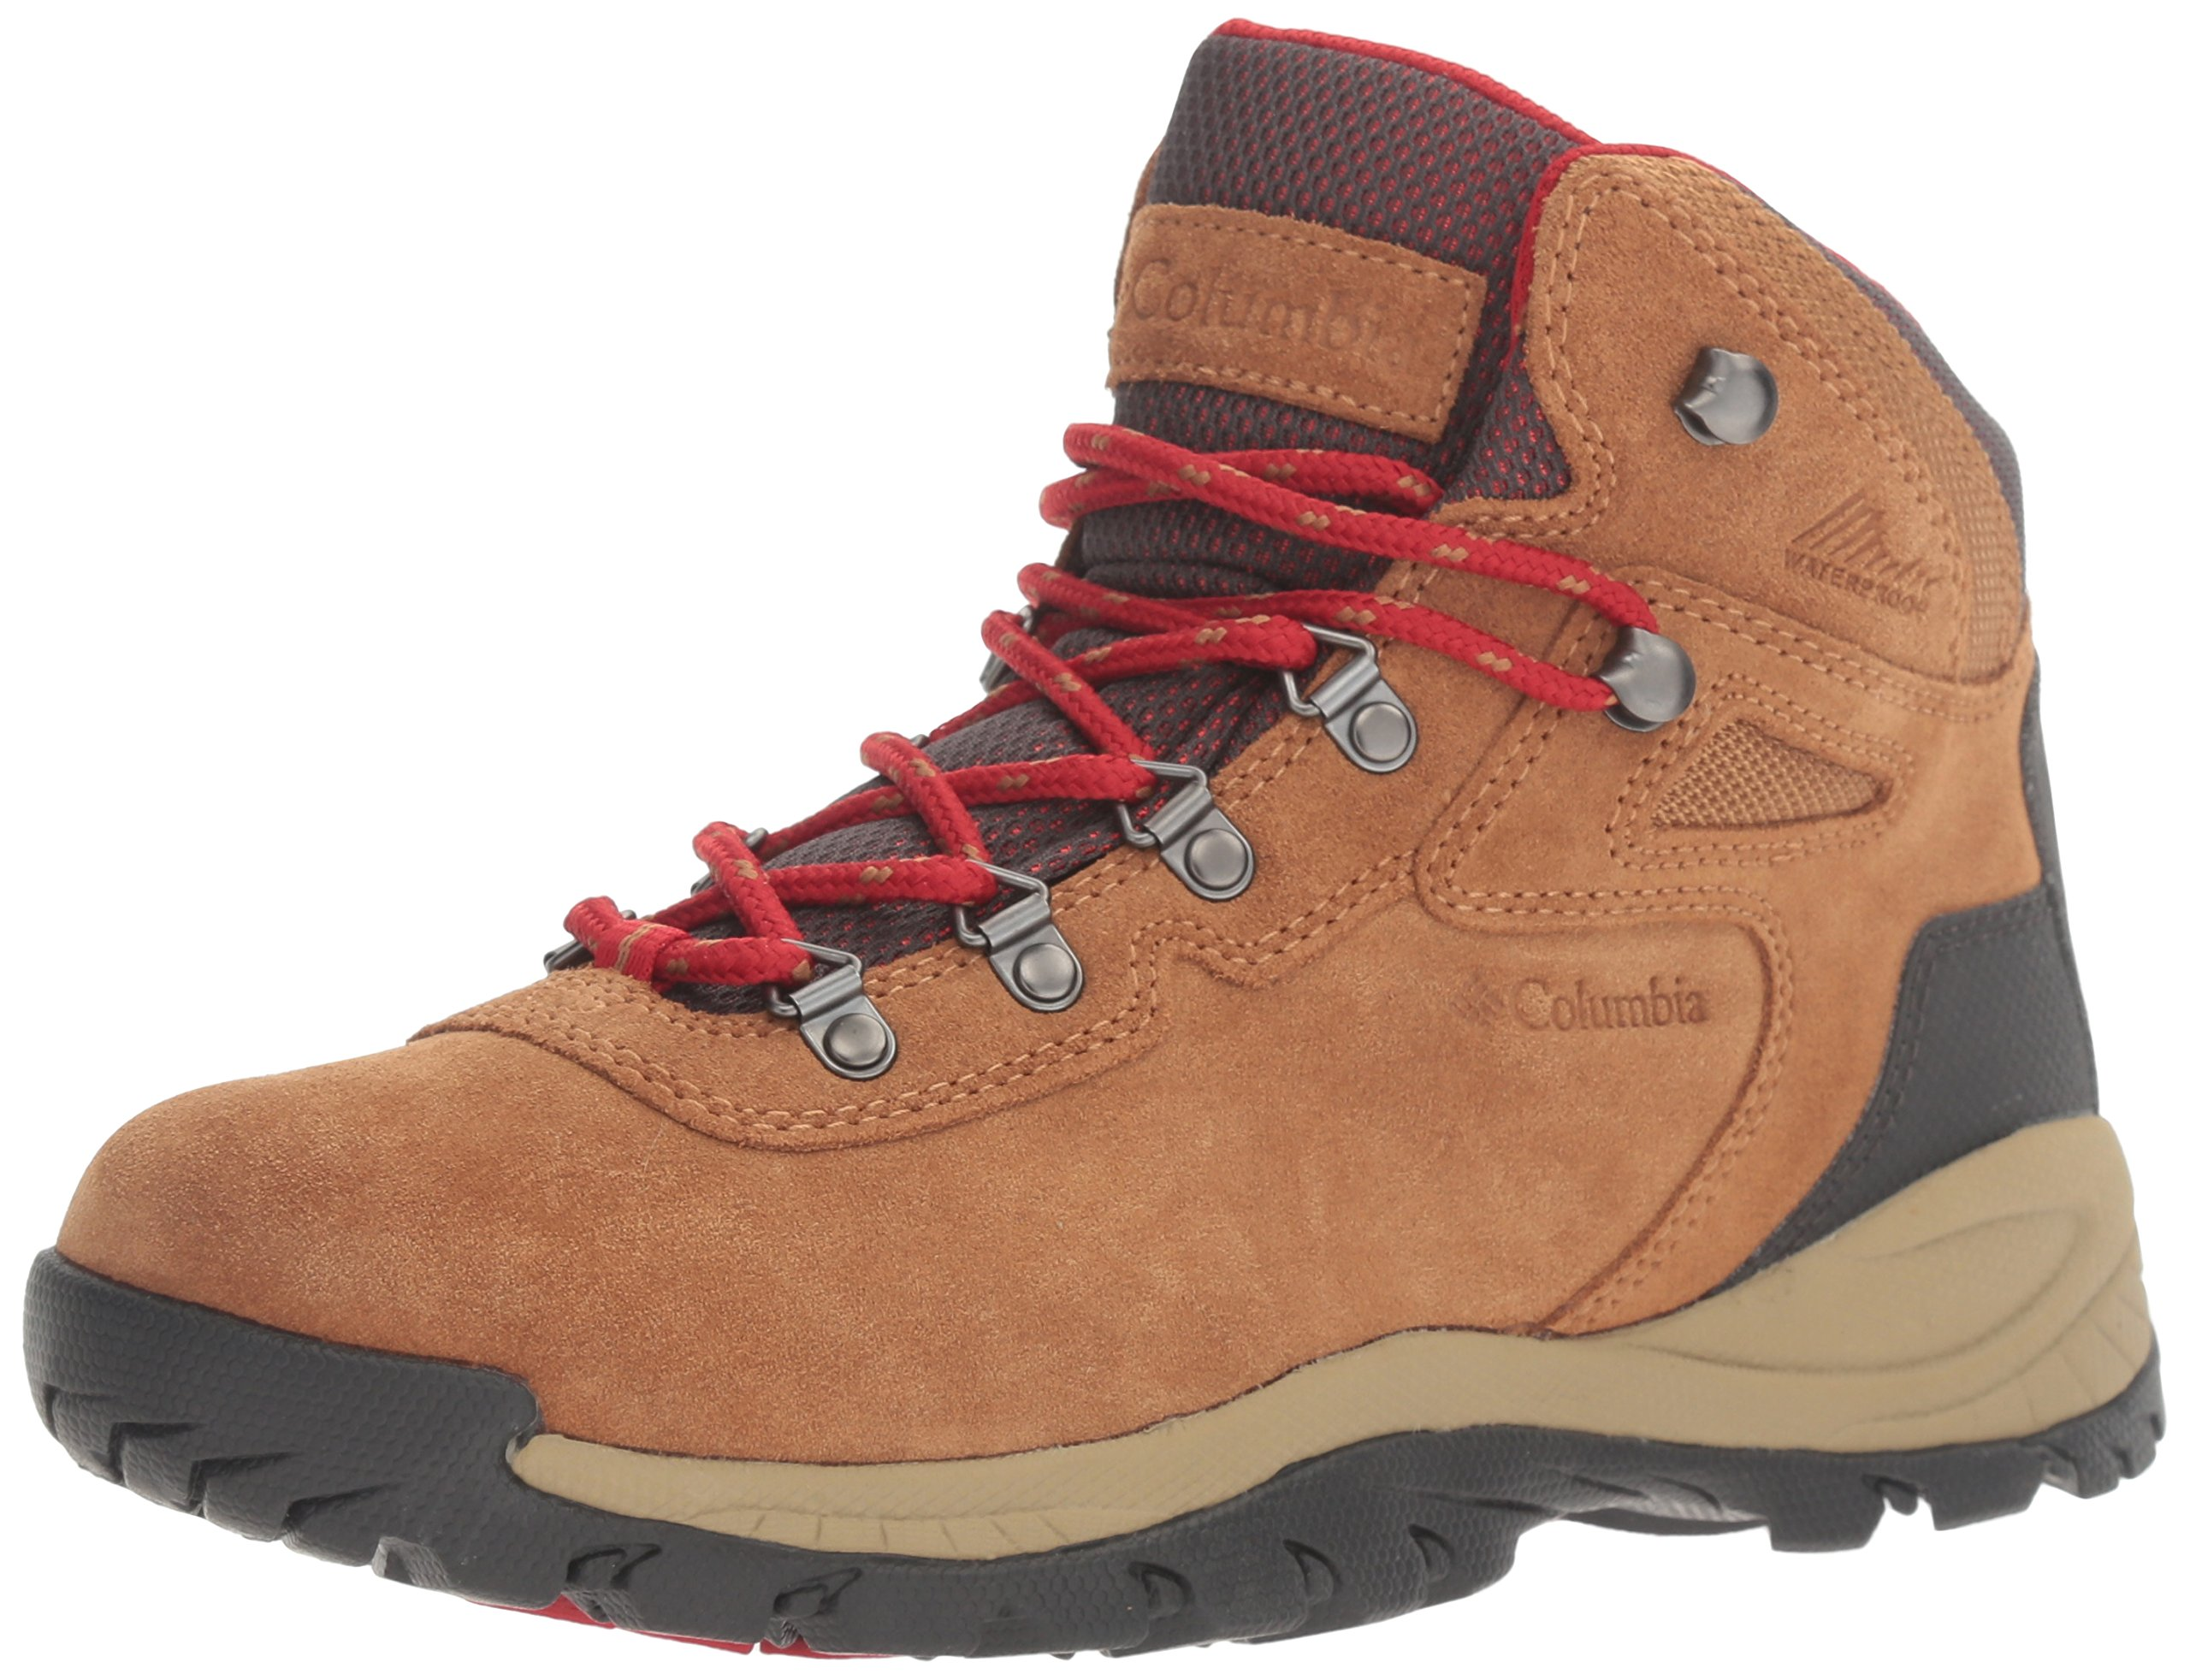 Columbia Women's Newton Ridge Plus Waterproof Amped Hiking Boot, Elk, Mountain Red, 8 B US